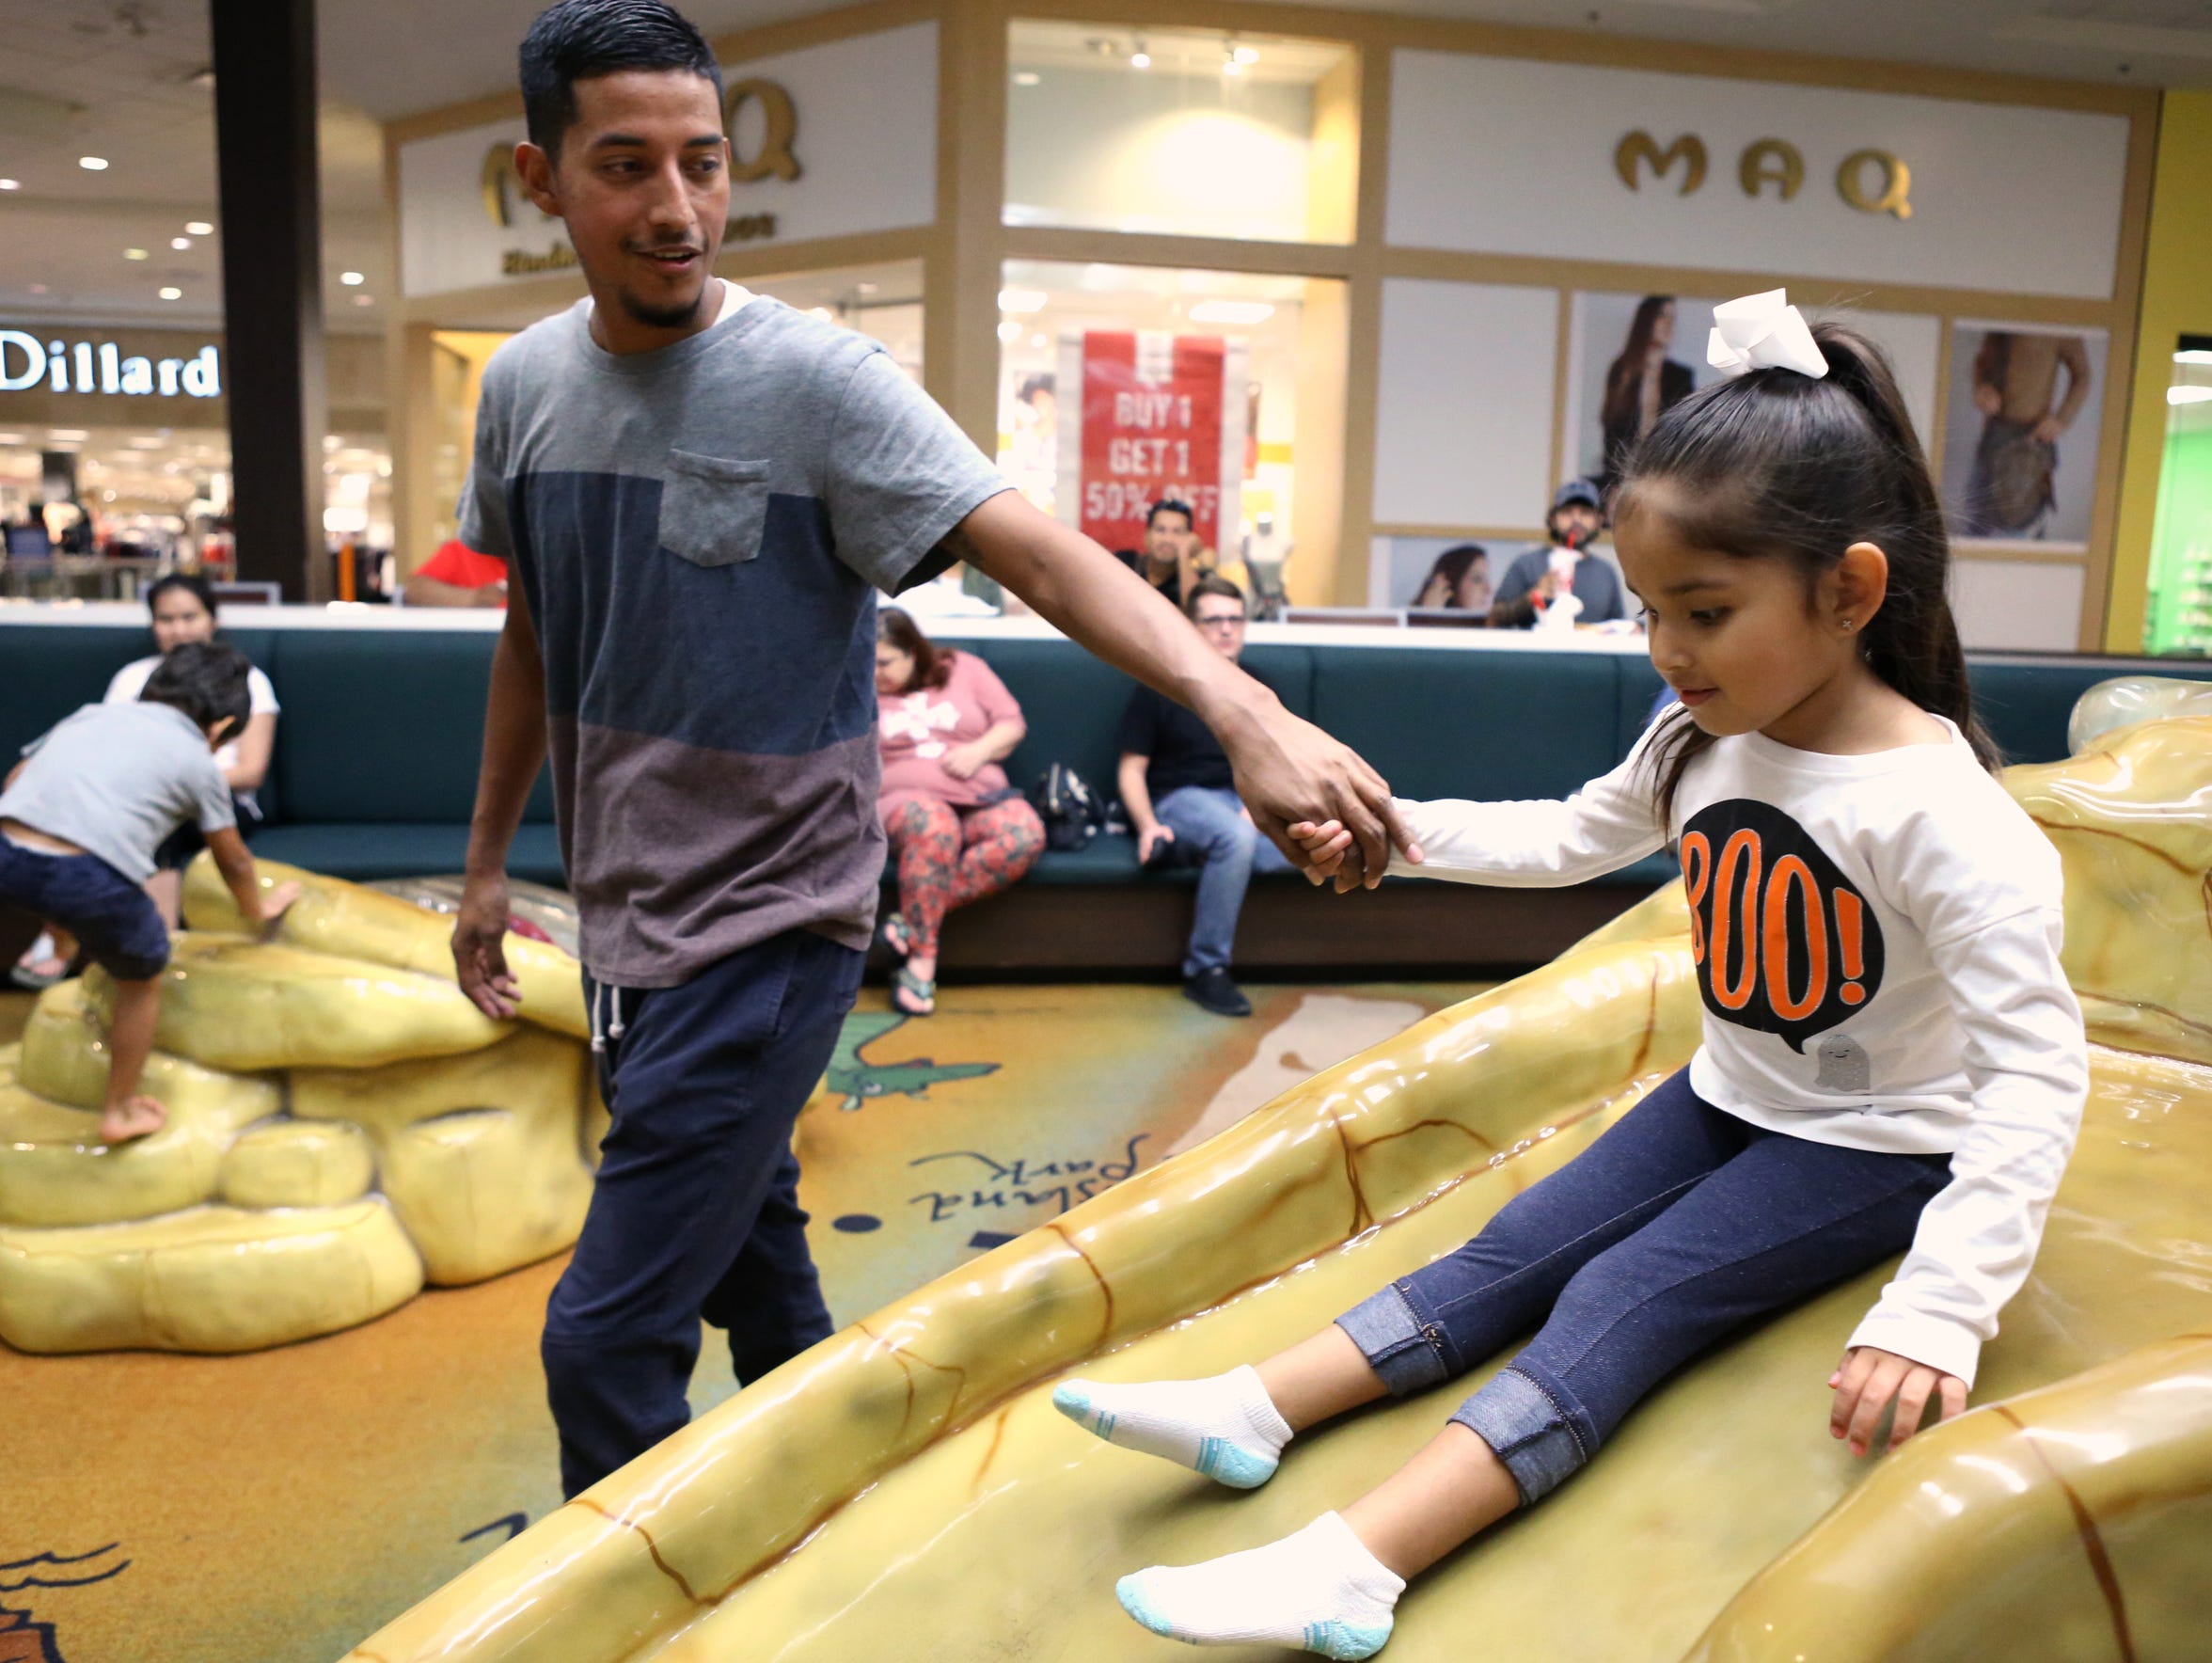 Ezequiel Rojas Martinez plays with Evalynn Rojas, 4 (turns 4 Dec 5) at the play area at La Palmera mall on October 10, 2017. When he isn't working, he spends all the time he can with his girls and wife.